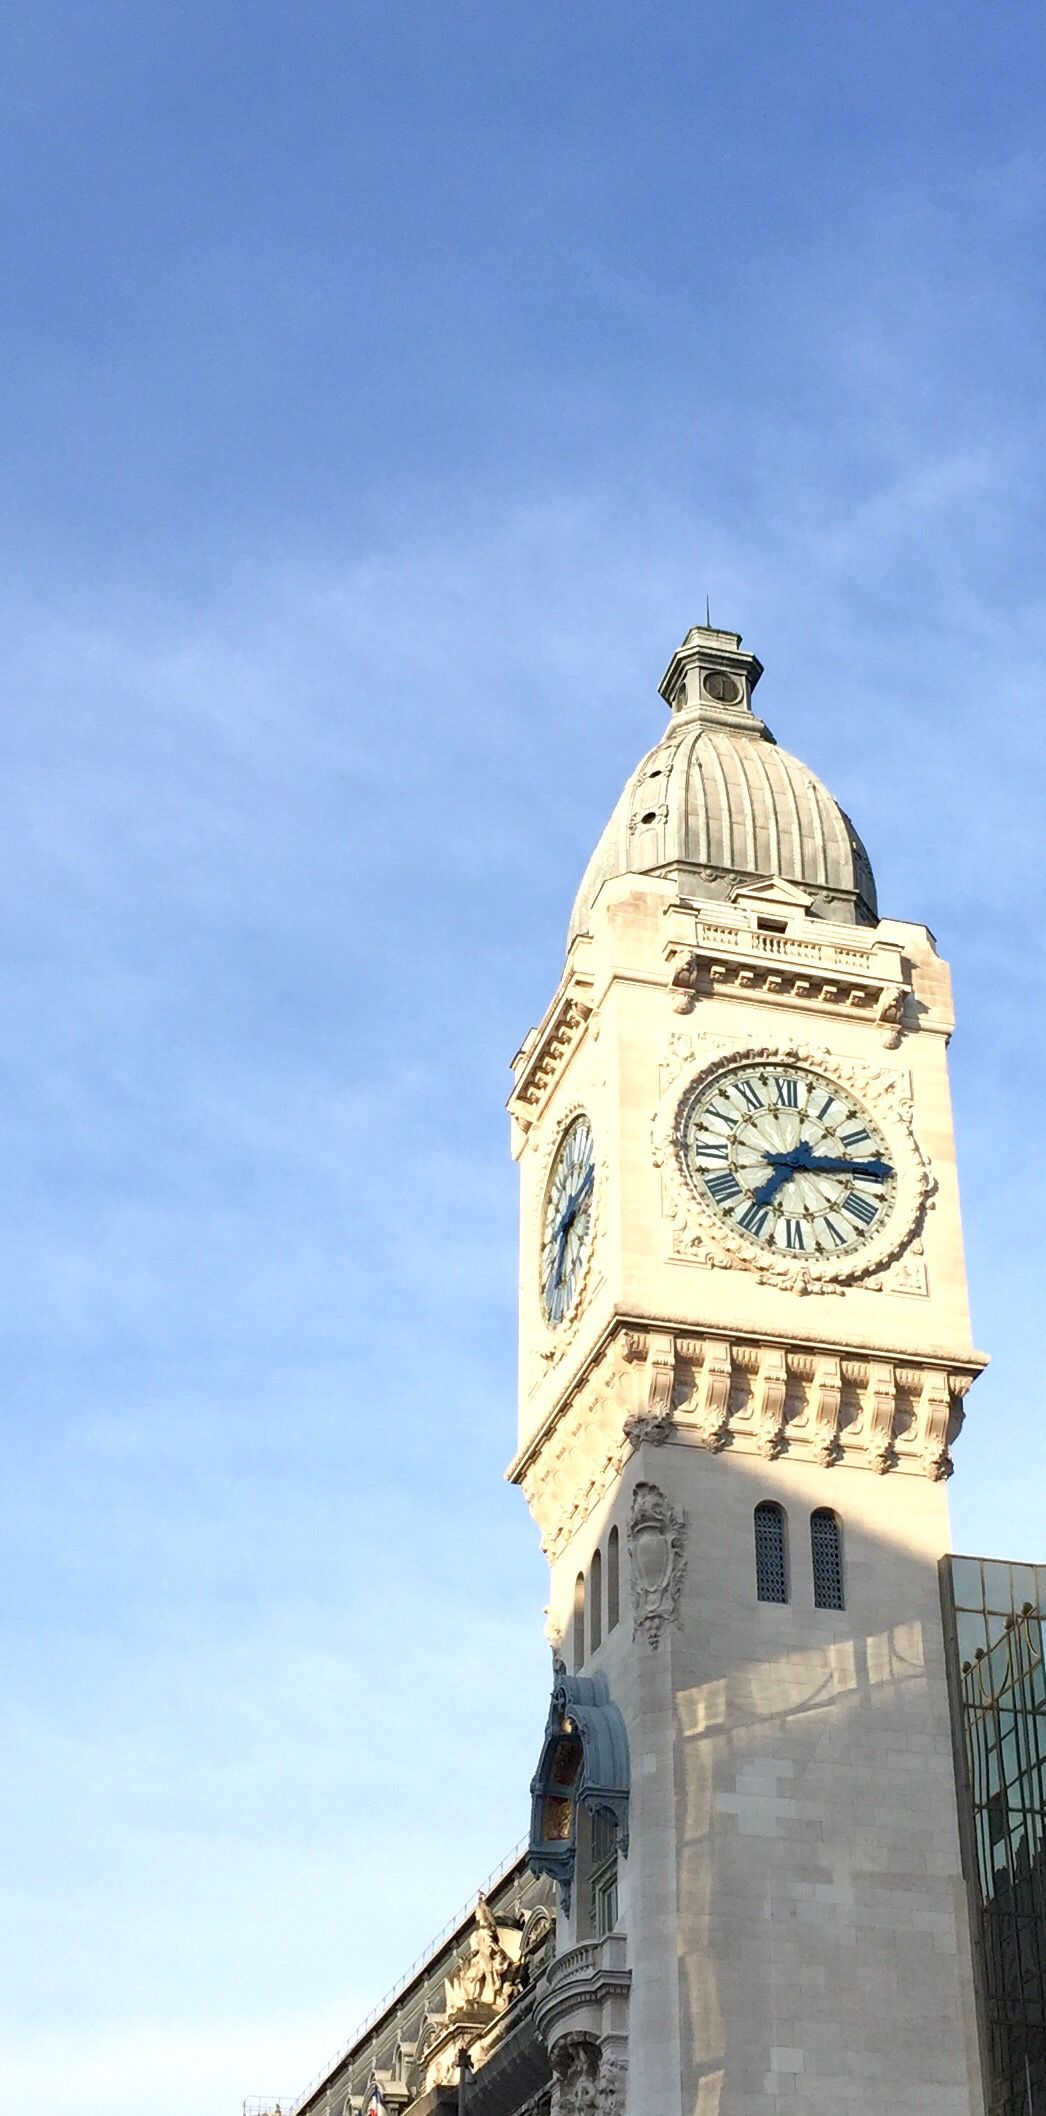 The Clock Tower At Gare De Lyon In Paris France Was Built